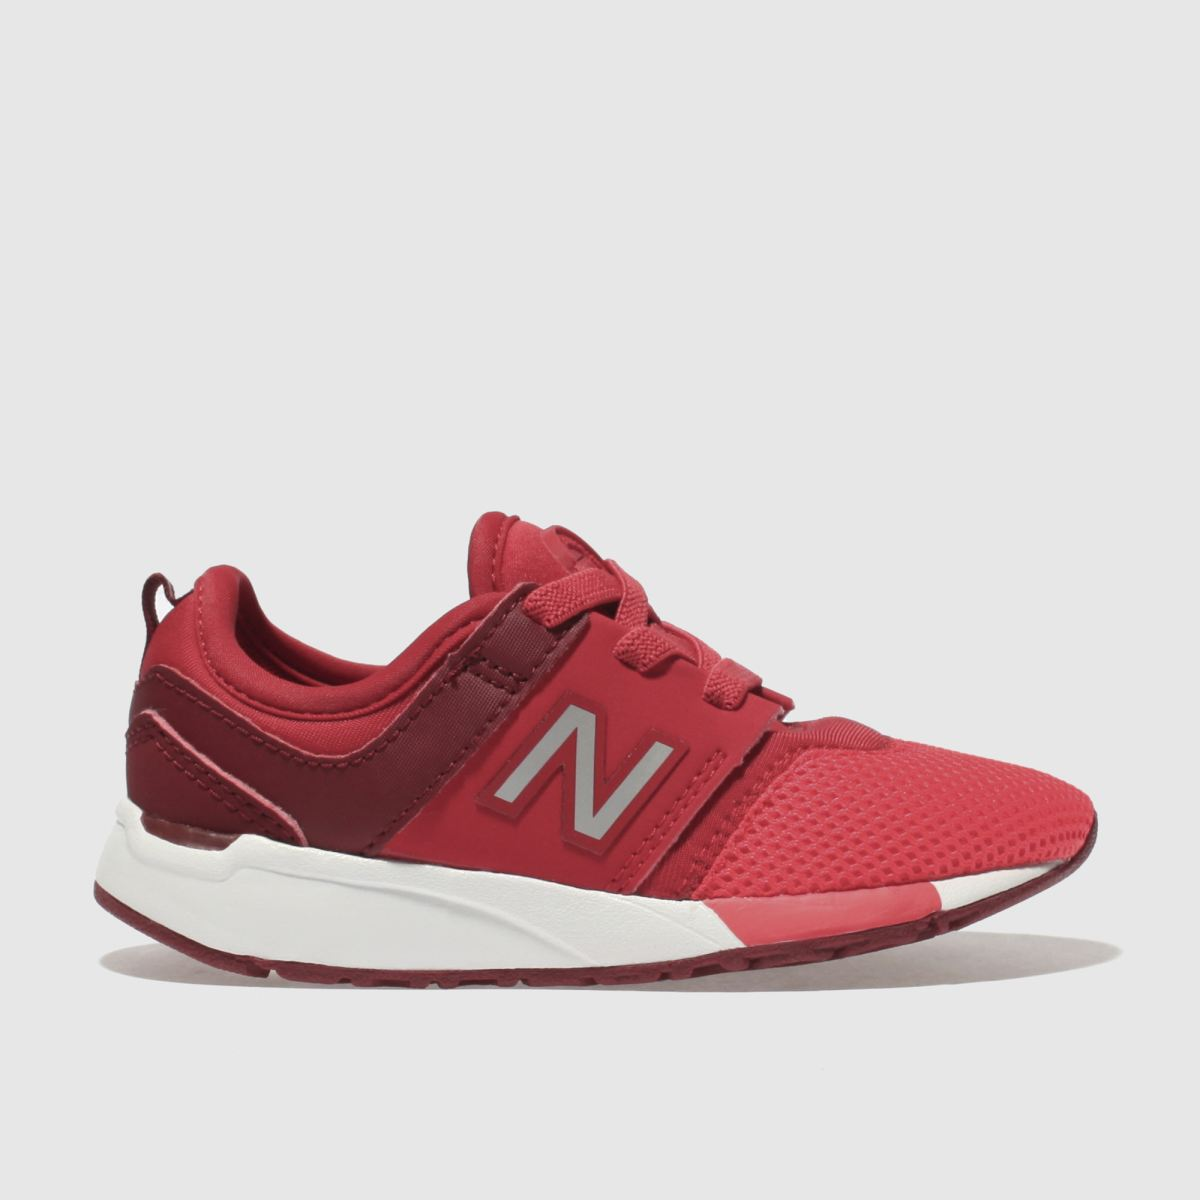 New Balance Red 247 Unisex Toddler Toddler